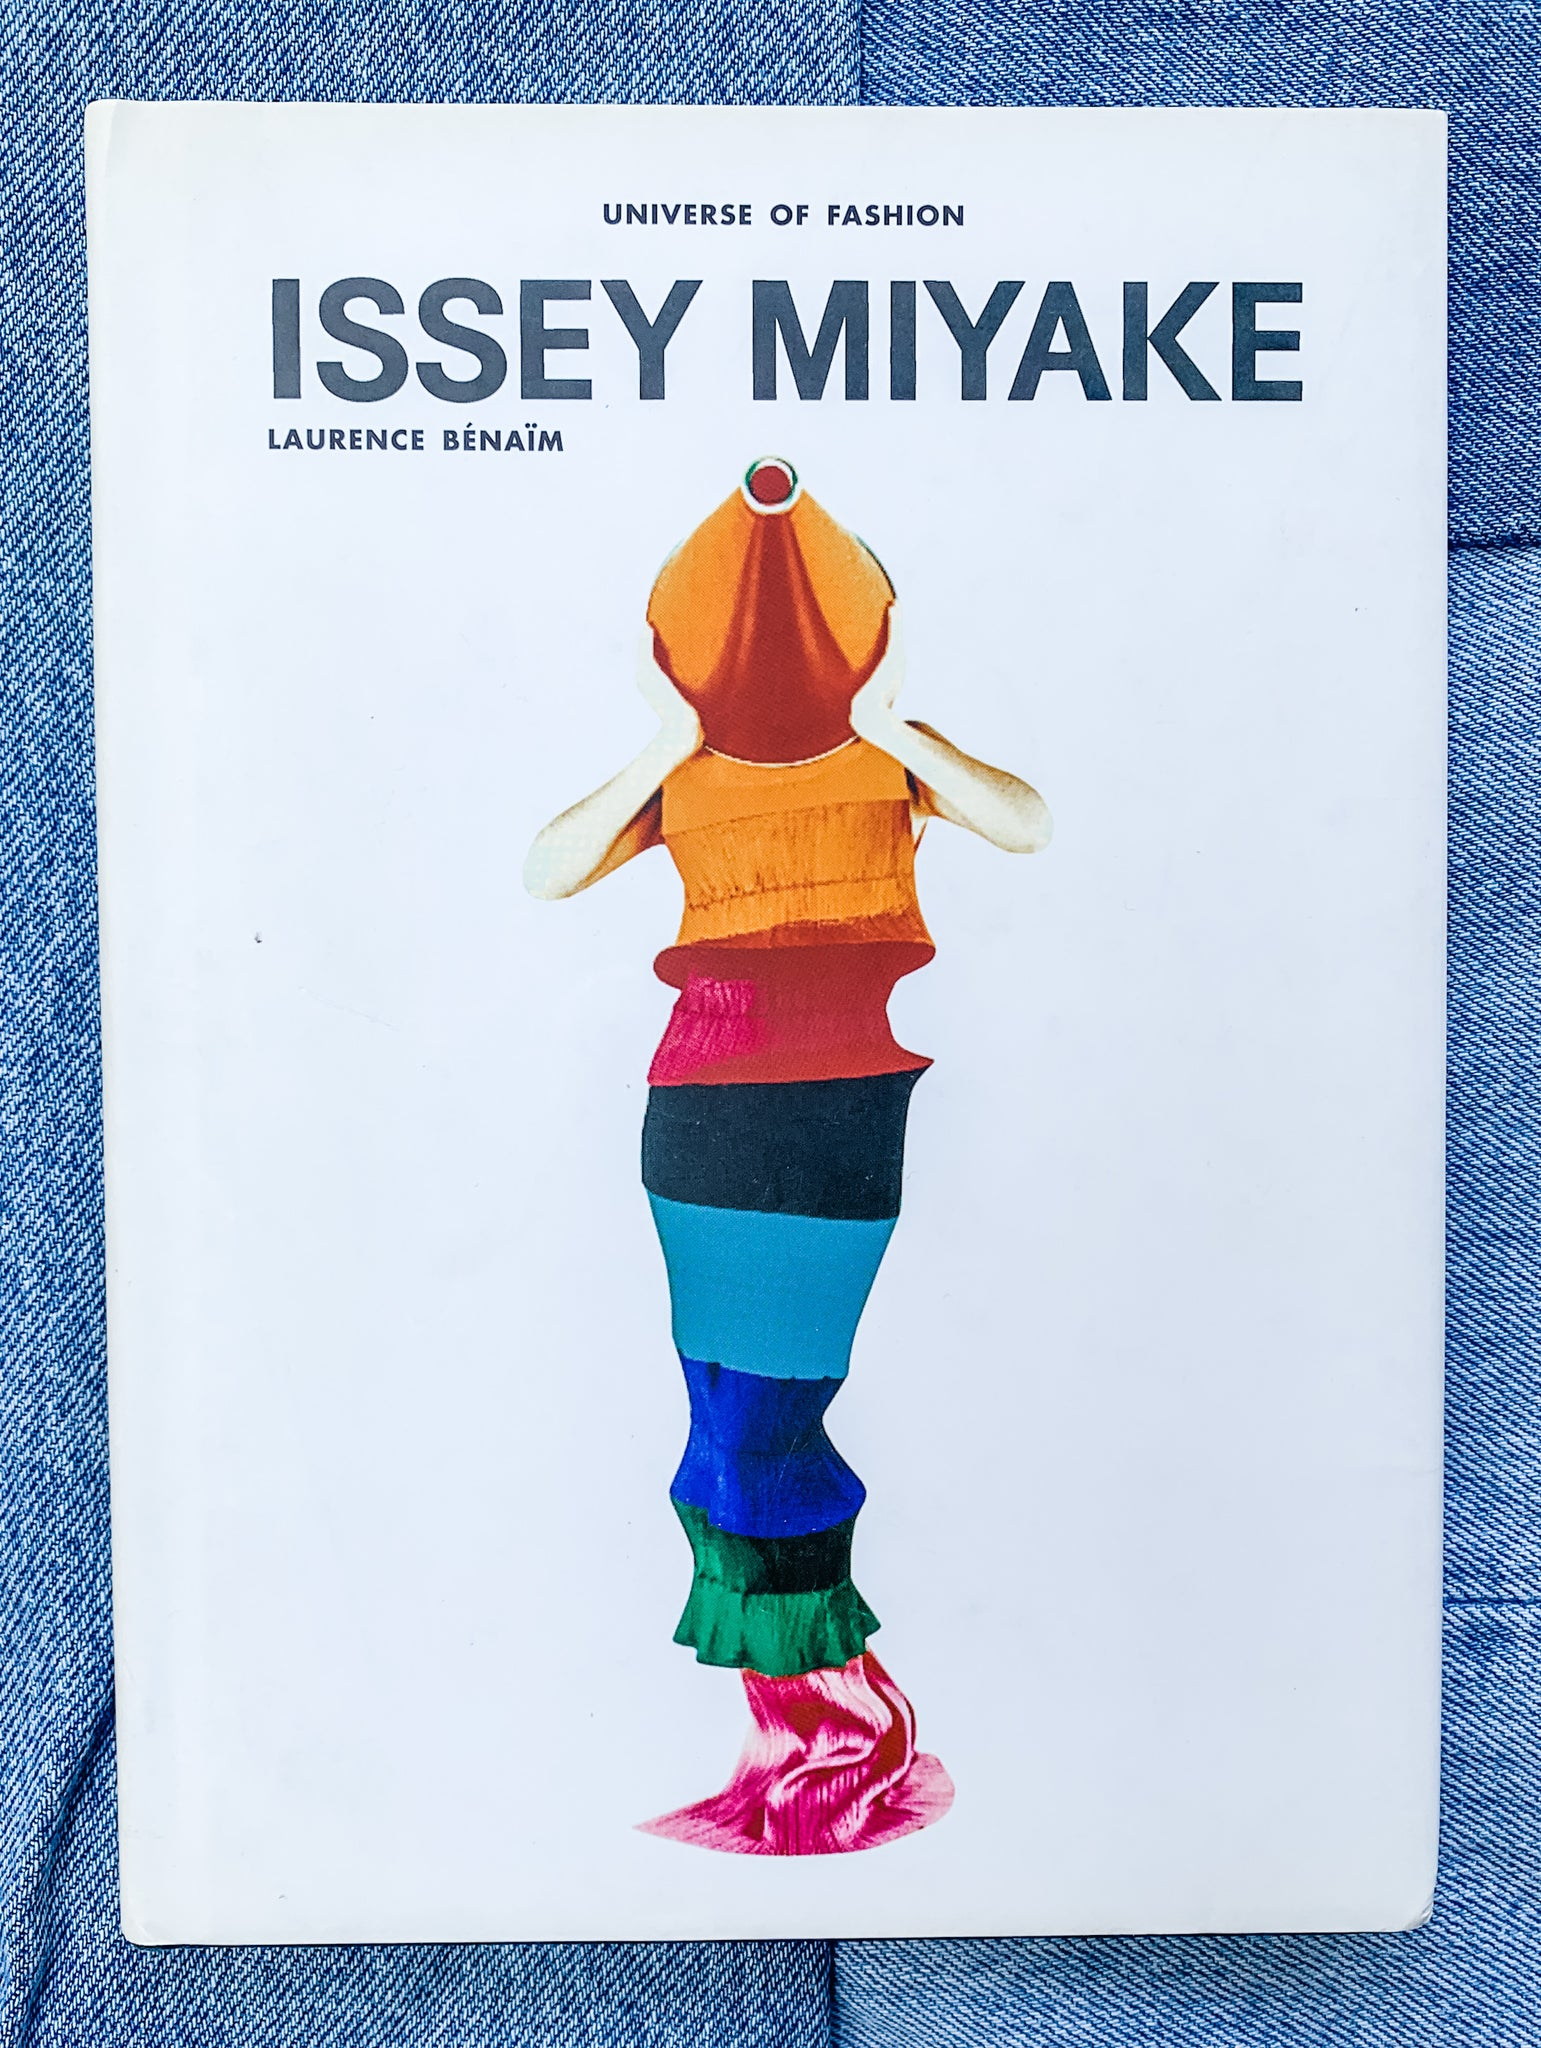 Issey Miyake - Universe of Fashion Series - My Best Vintage Life Podcast